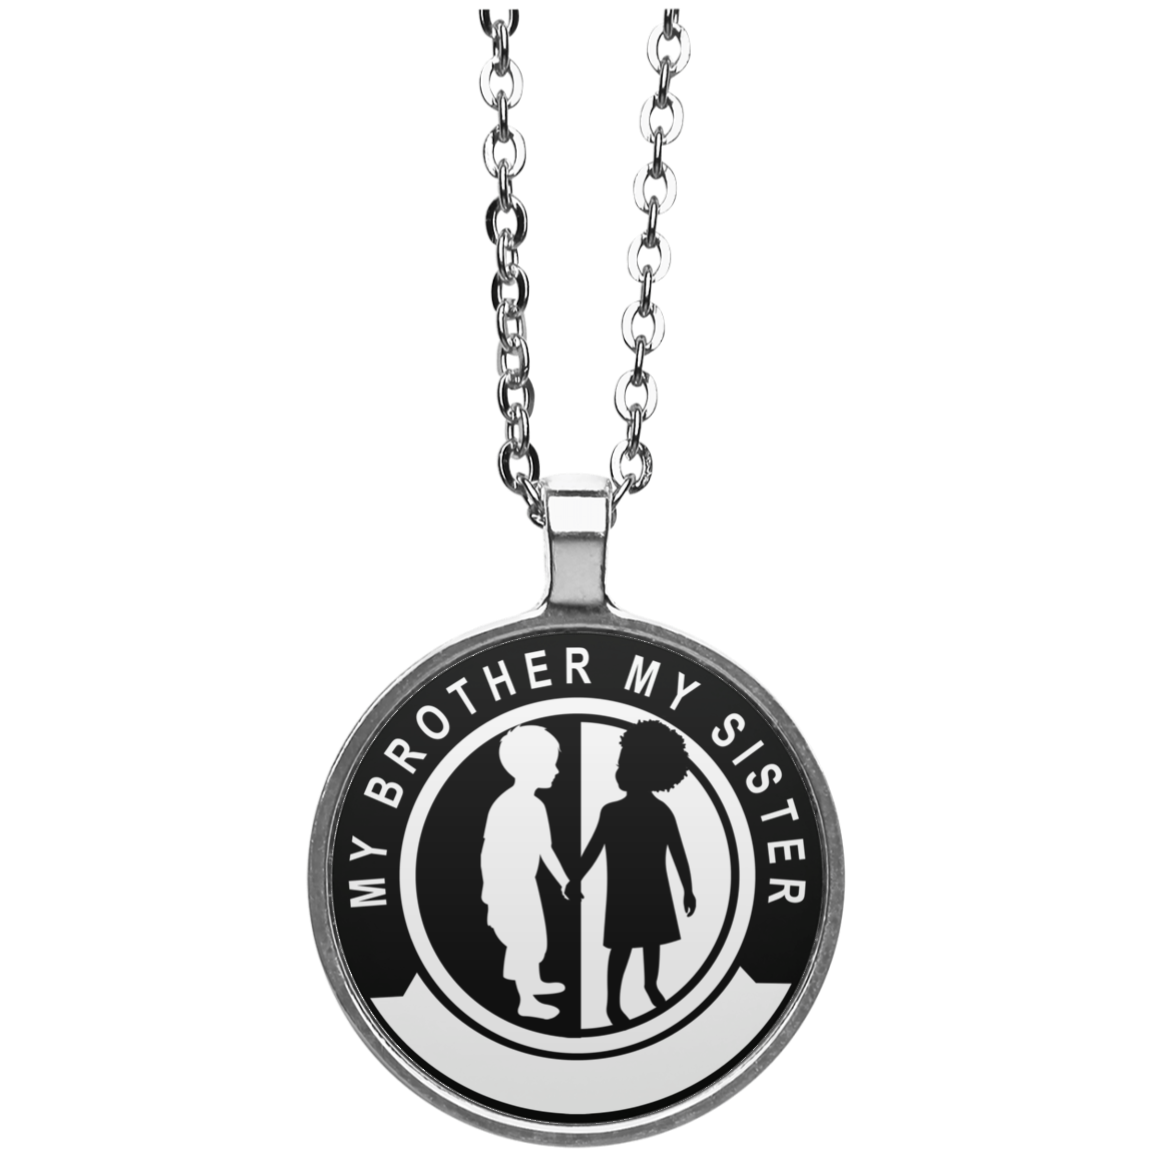 My Brother My Sister, circle Necklace - Cloud9 Unlimited